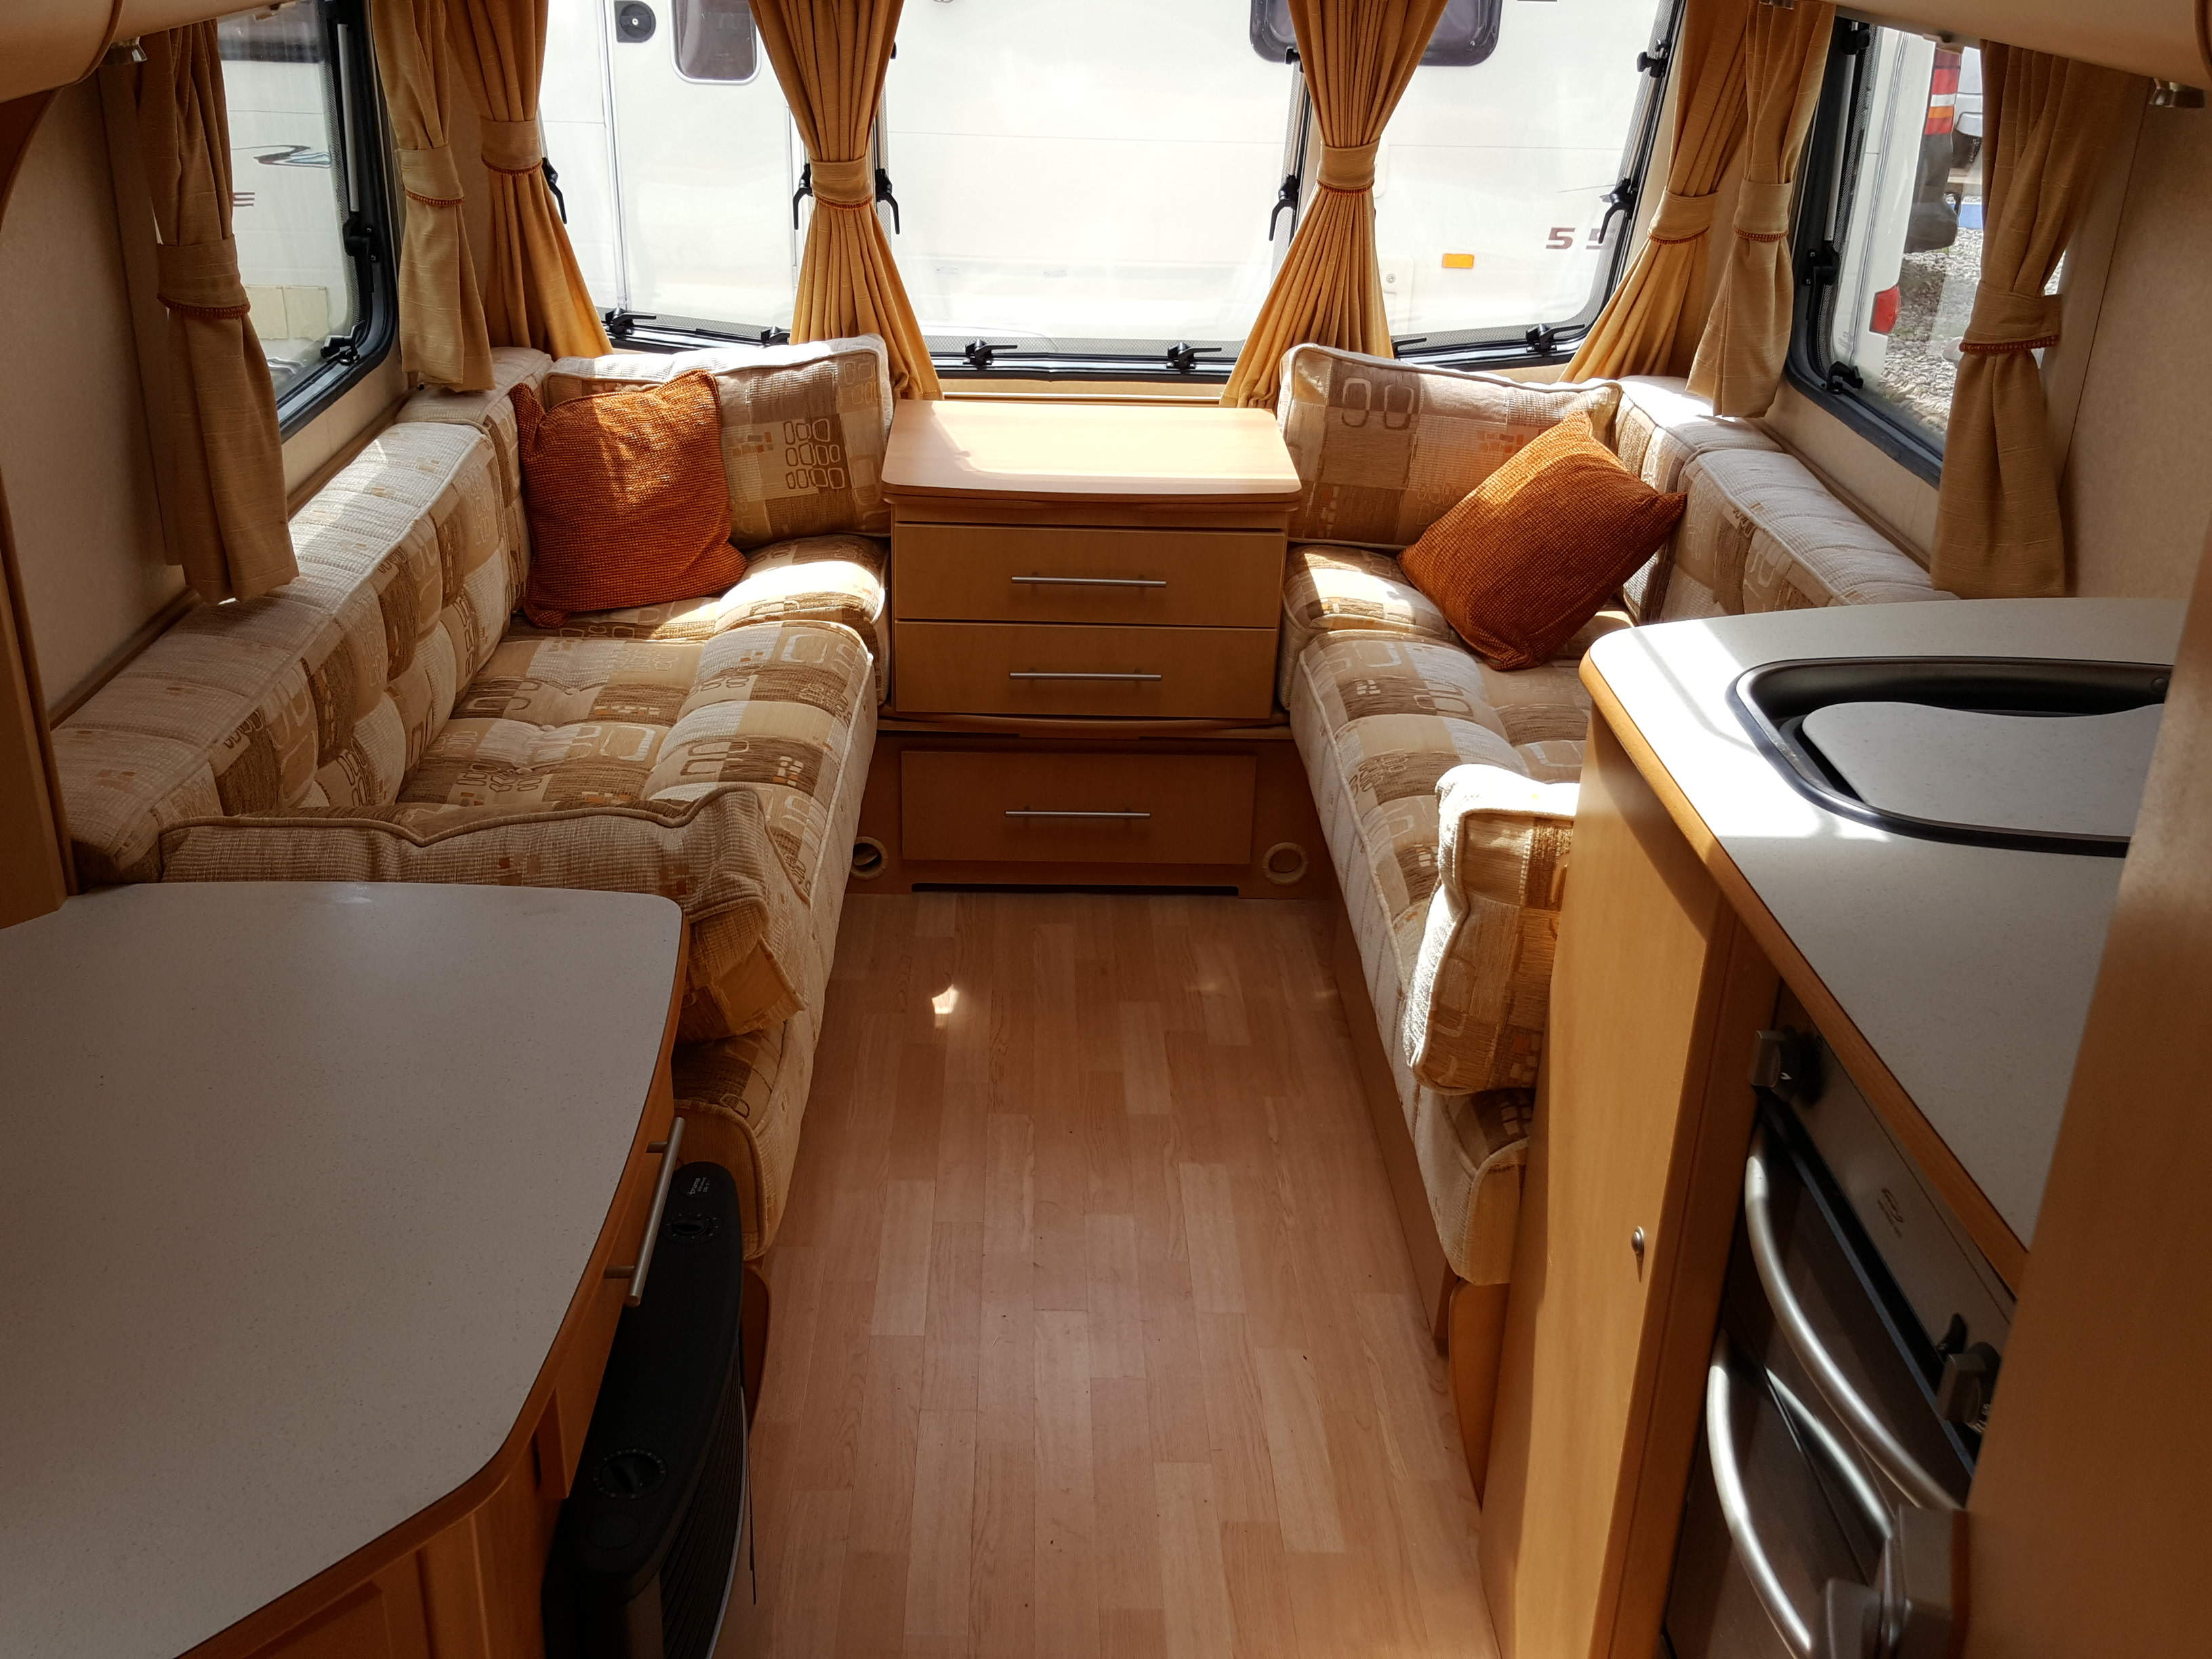 2008 Bailey Pageant Monarch 2 Berth End Washroom CHOICE OF 2